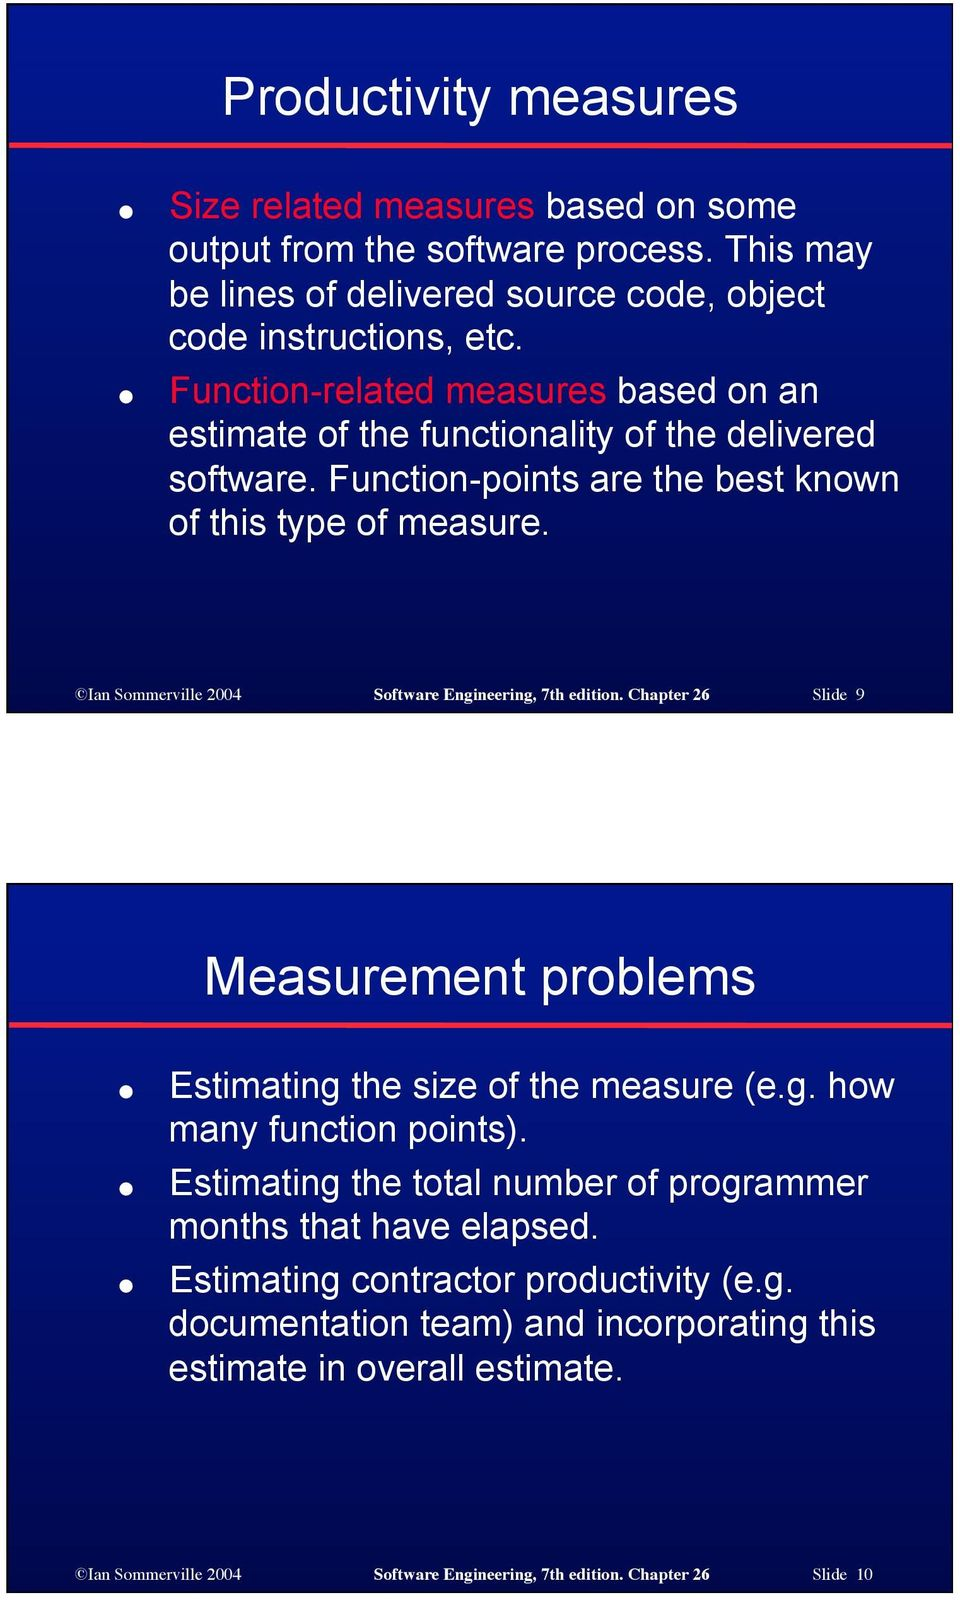 Ian Sommerville 2004 Software Engineering, 7th edition. Chapter 26 Slide 9 Measurement problems Estimating the size of the measure (e.g. how many function points).